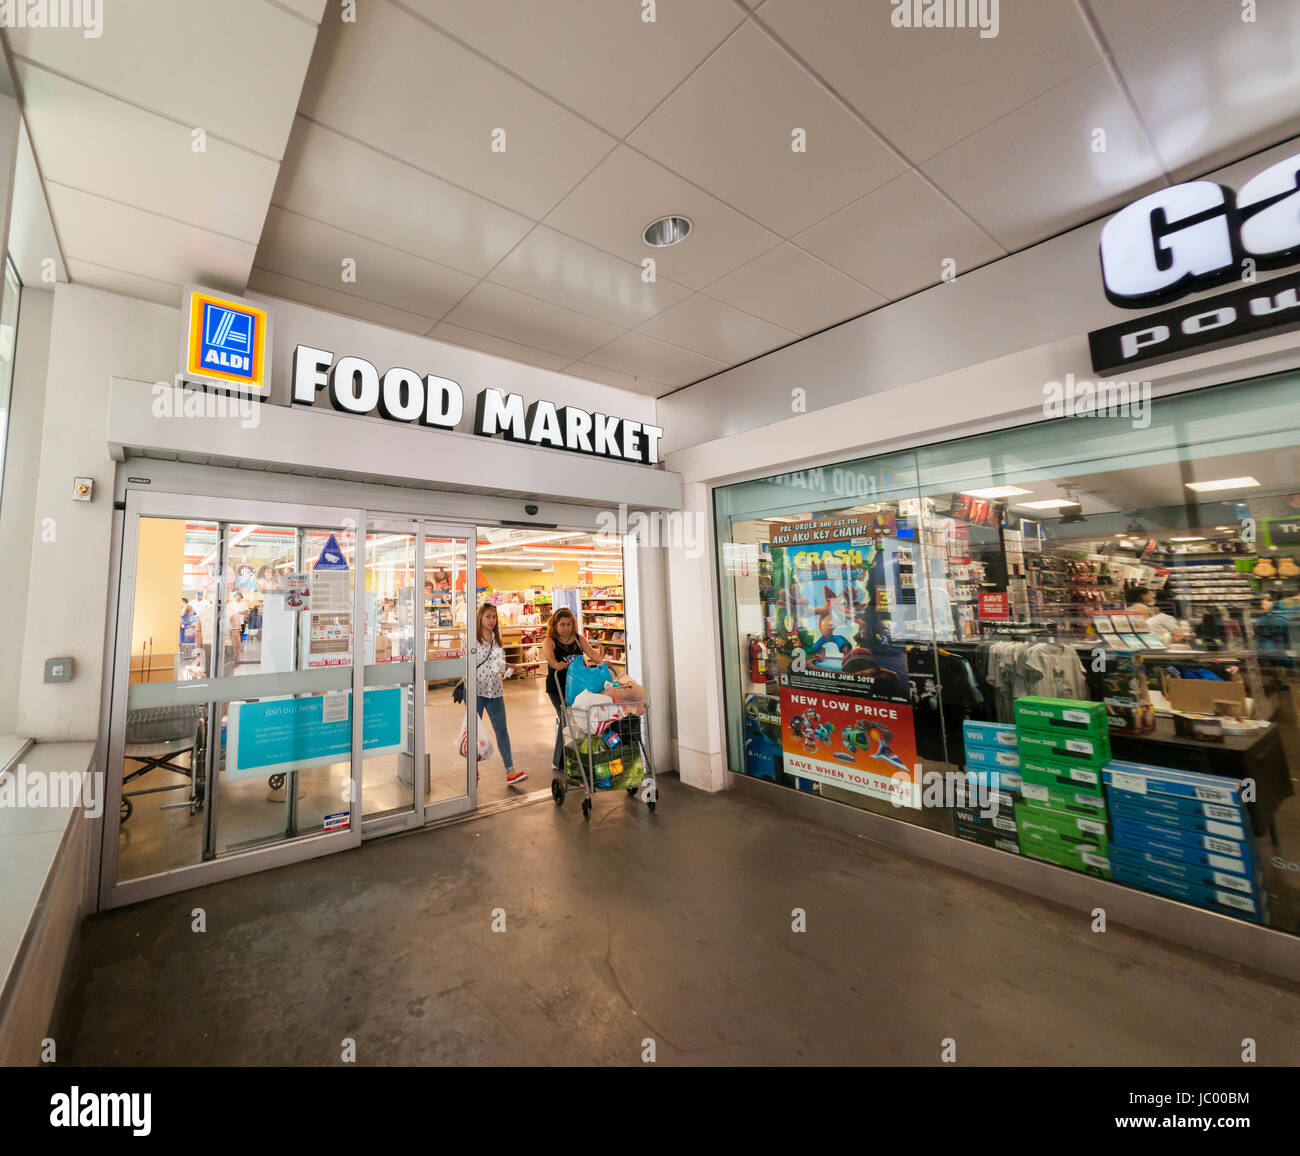 The Aldi Food Market in the East River Plaza shopping